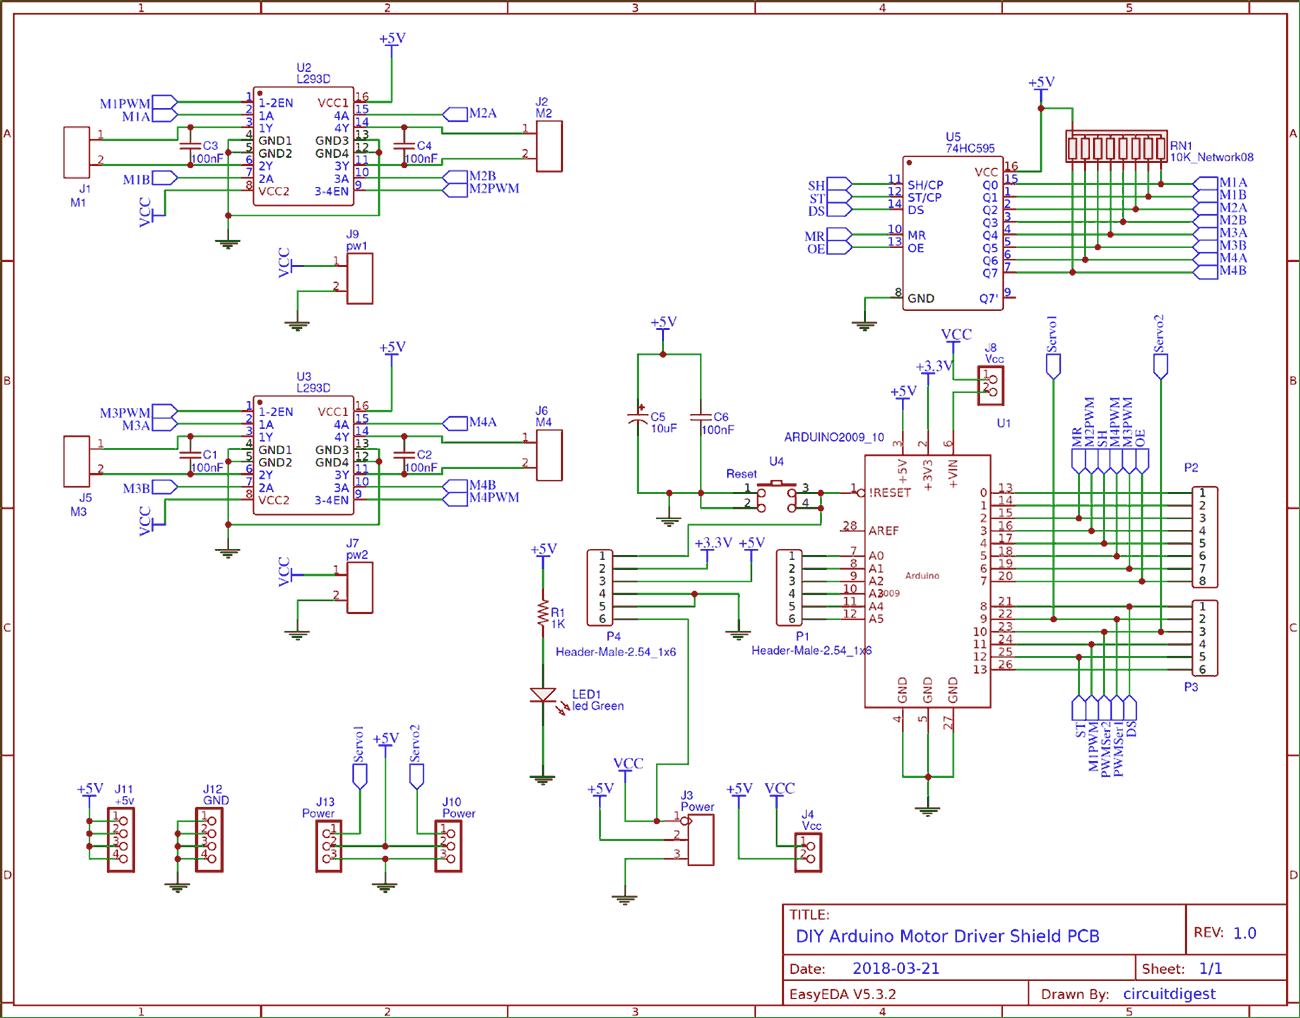 circuit diagram for diy arduino motor driver shield pcb [ 1300 x 1018 Pixel ]